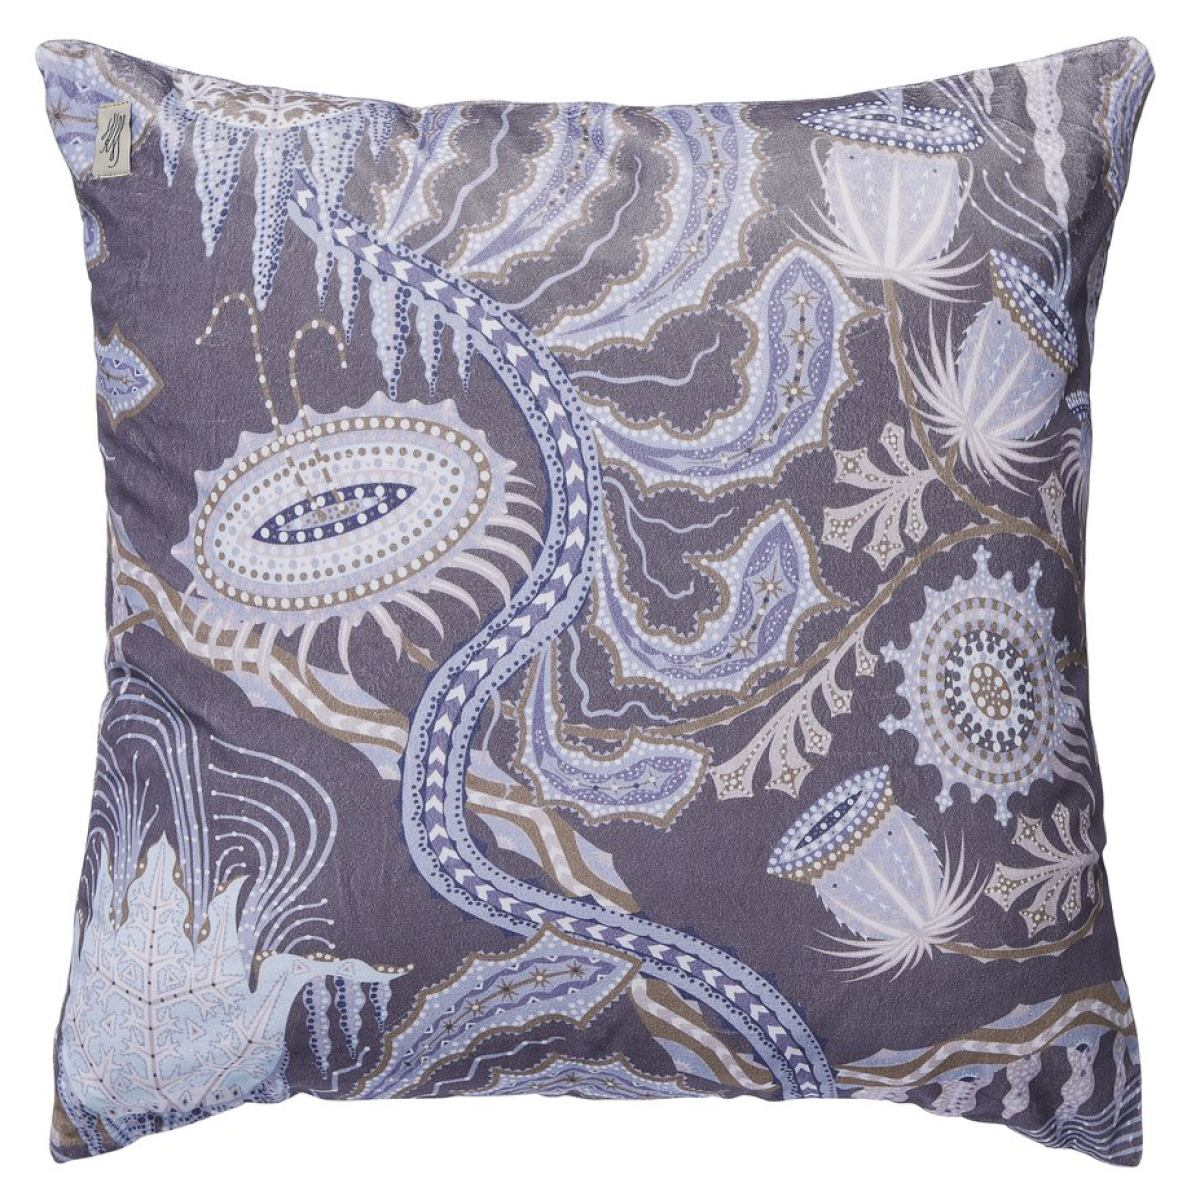 "Cushion Sleeve ""Ice Palace"" (Dark) made of Velvet"